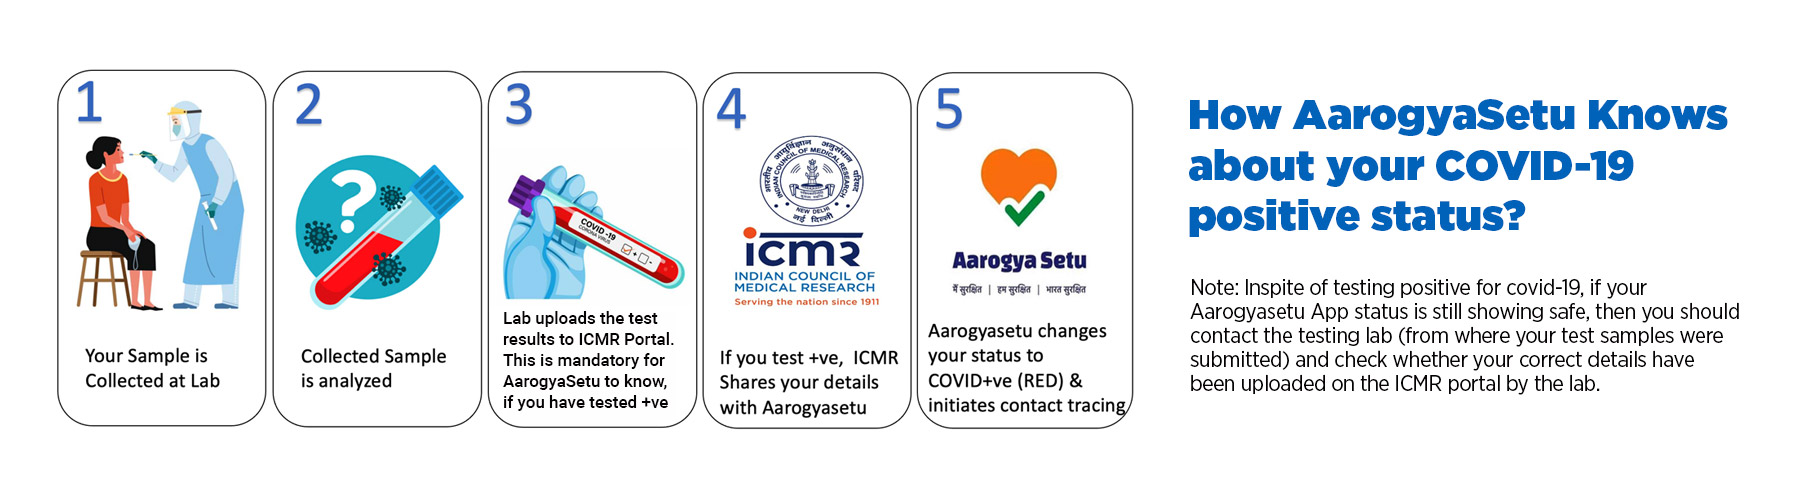 How AarogyaSetu Know about your COVID-19 positive status